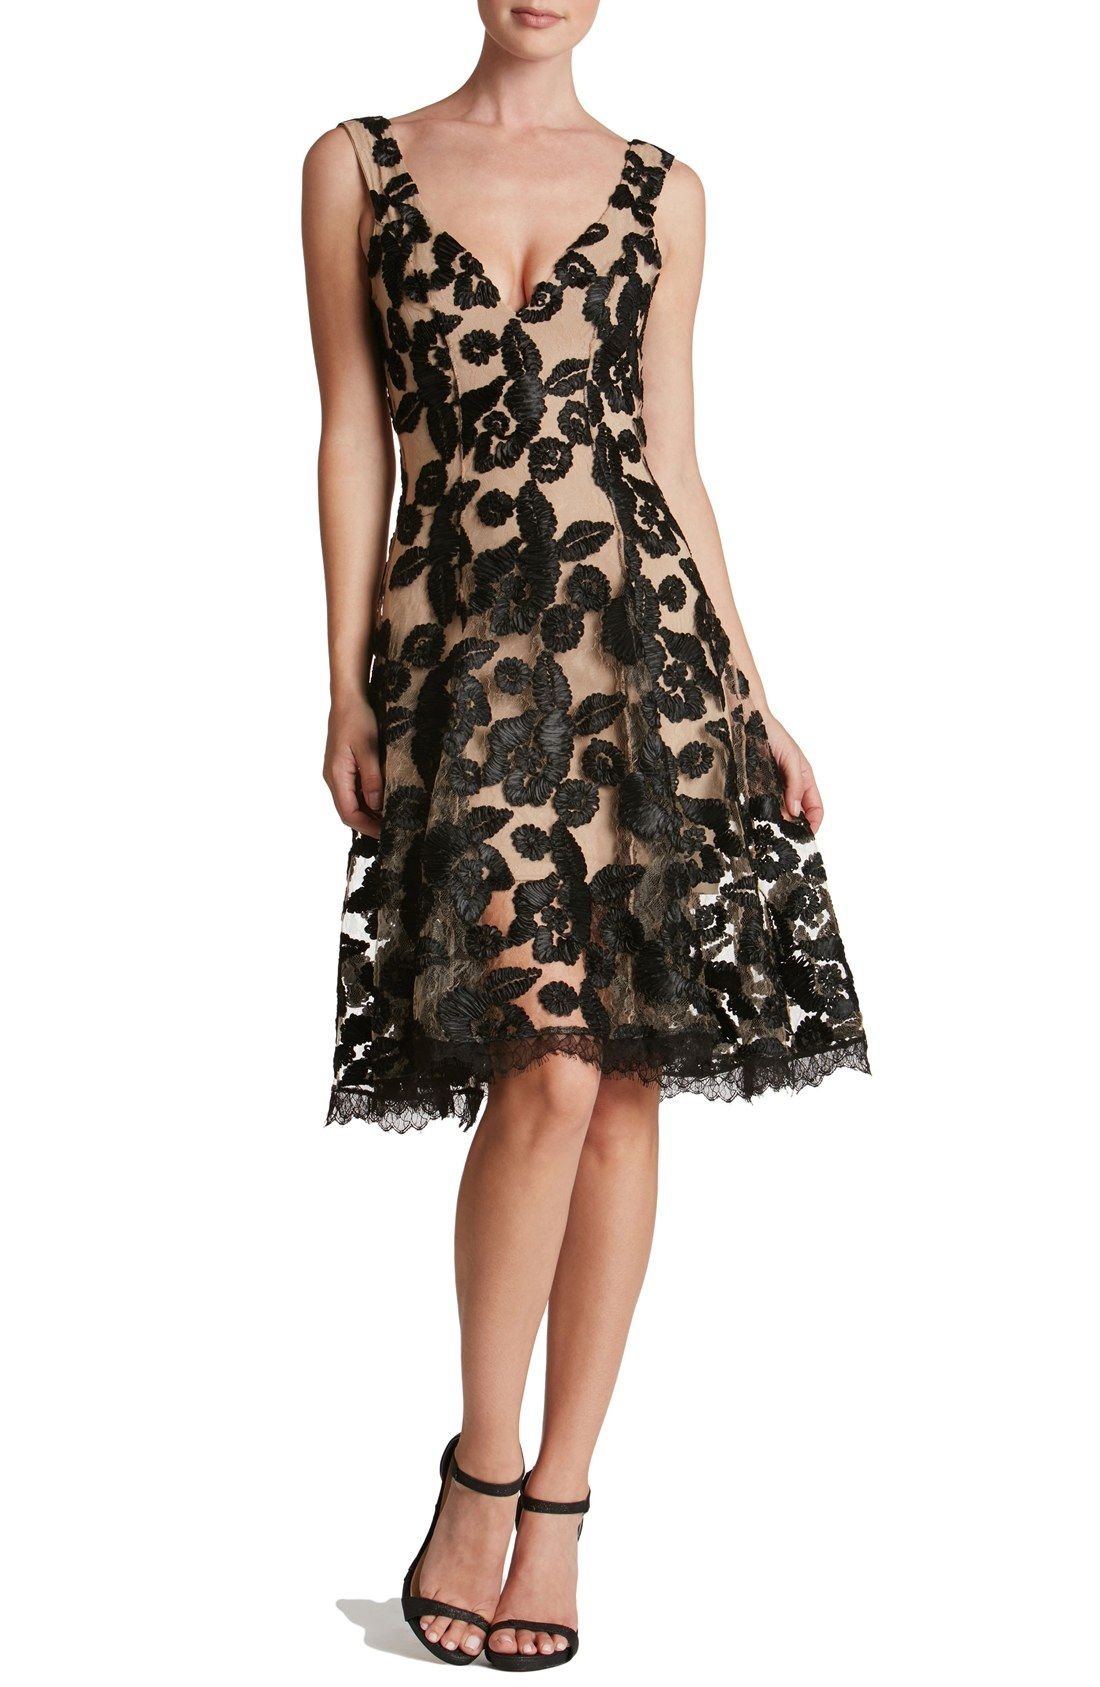 wedding guest dresses What to Wear to a Fall Wedding Wedding guest dresses for autumn weddings and